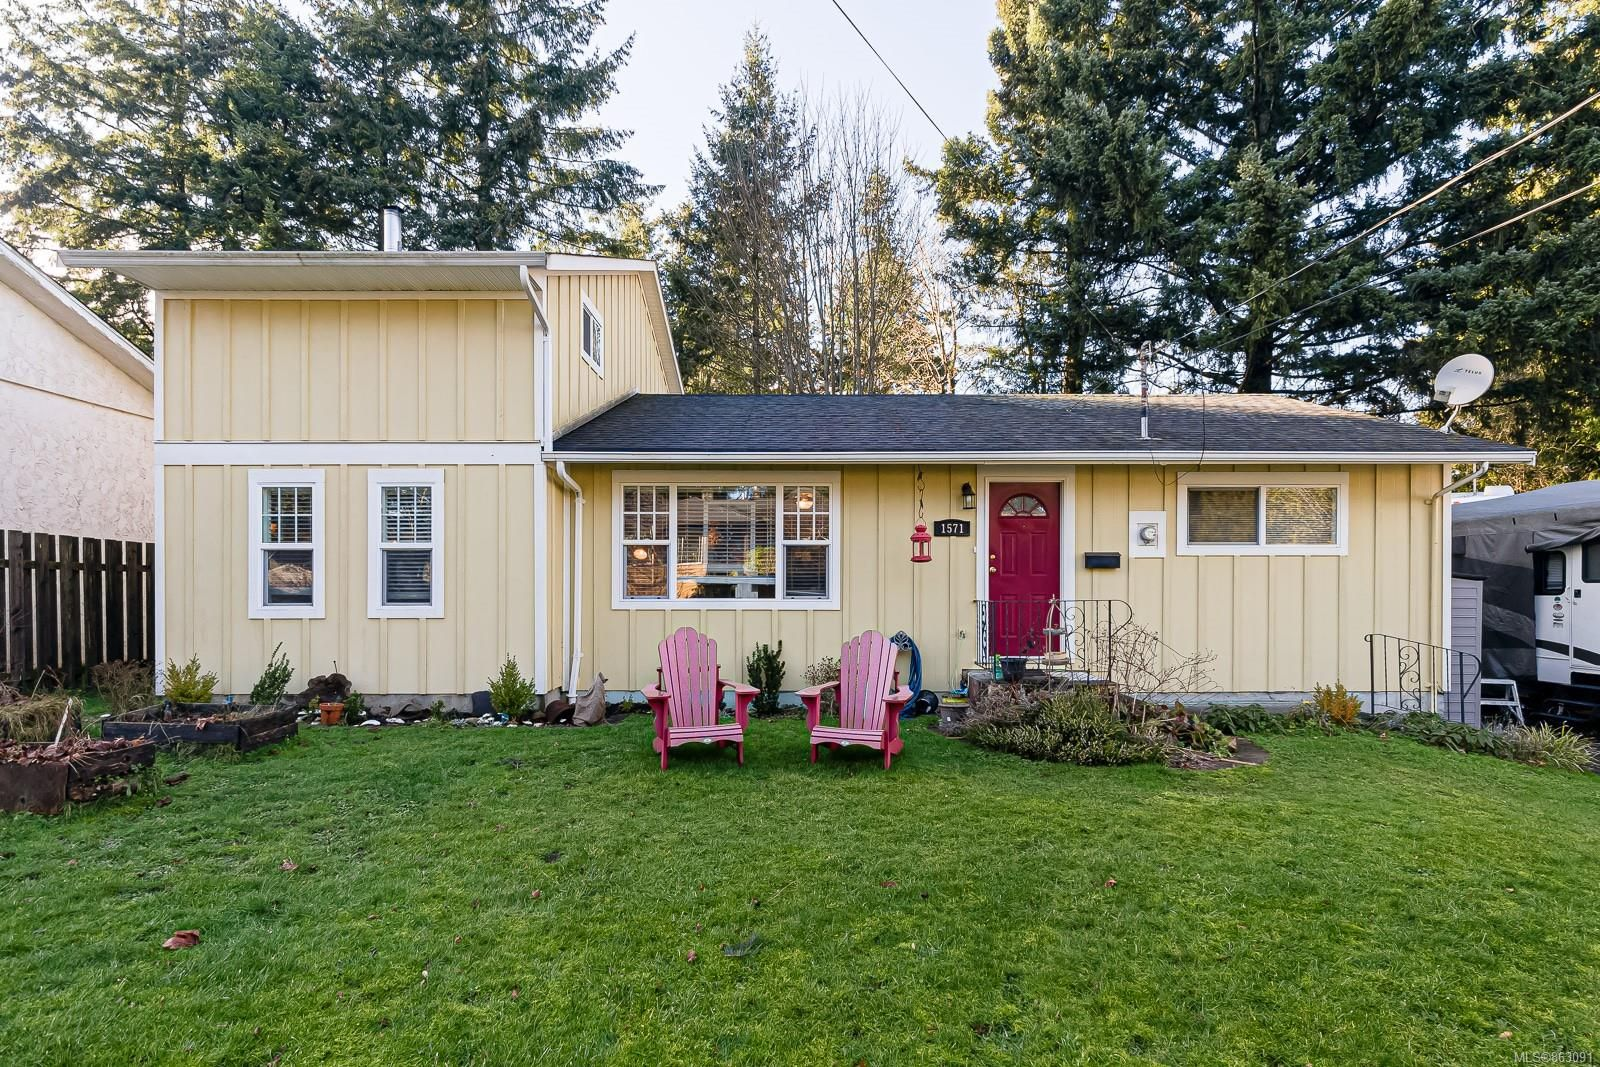 Main Photo: 1571 Tull Ave in : CV Courtenay City House for sale (Comox Valley)  : MLS®# 863091